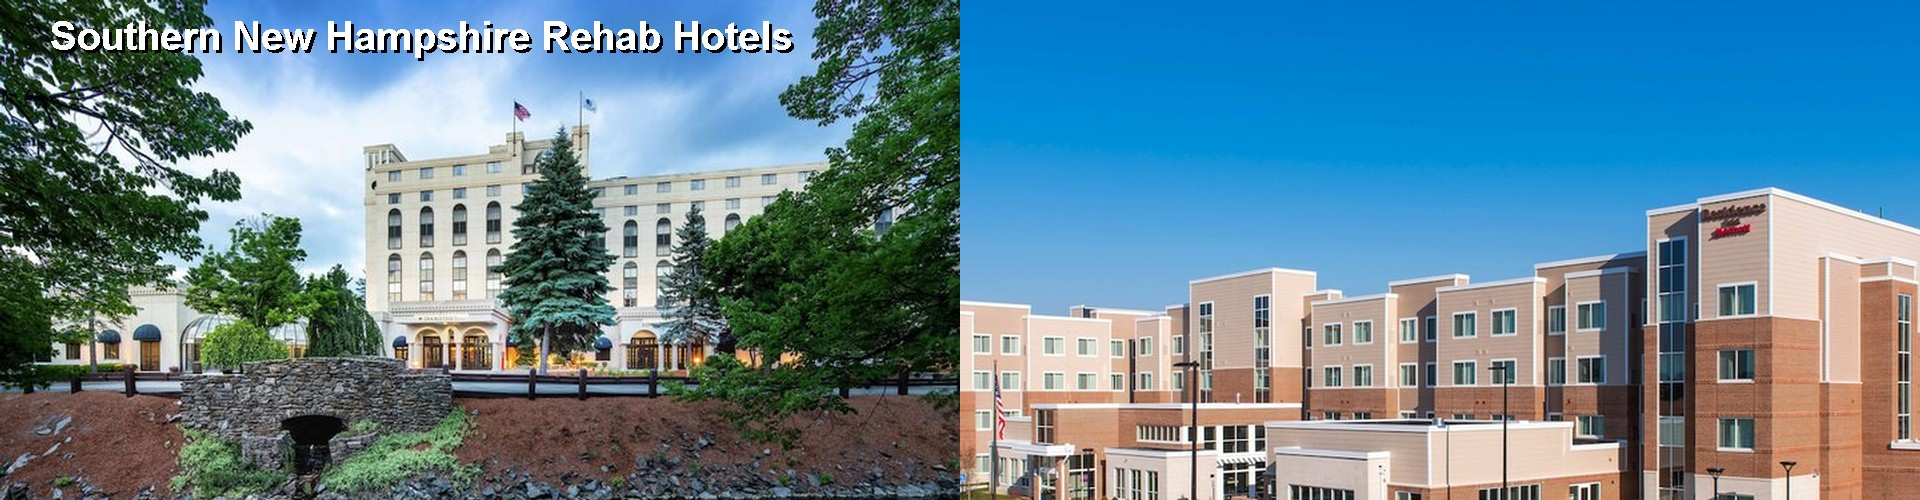 5 Best Hotels near Southern New Hampshire Rehab